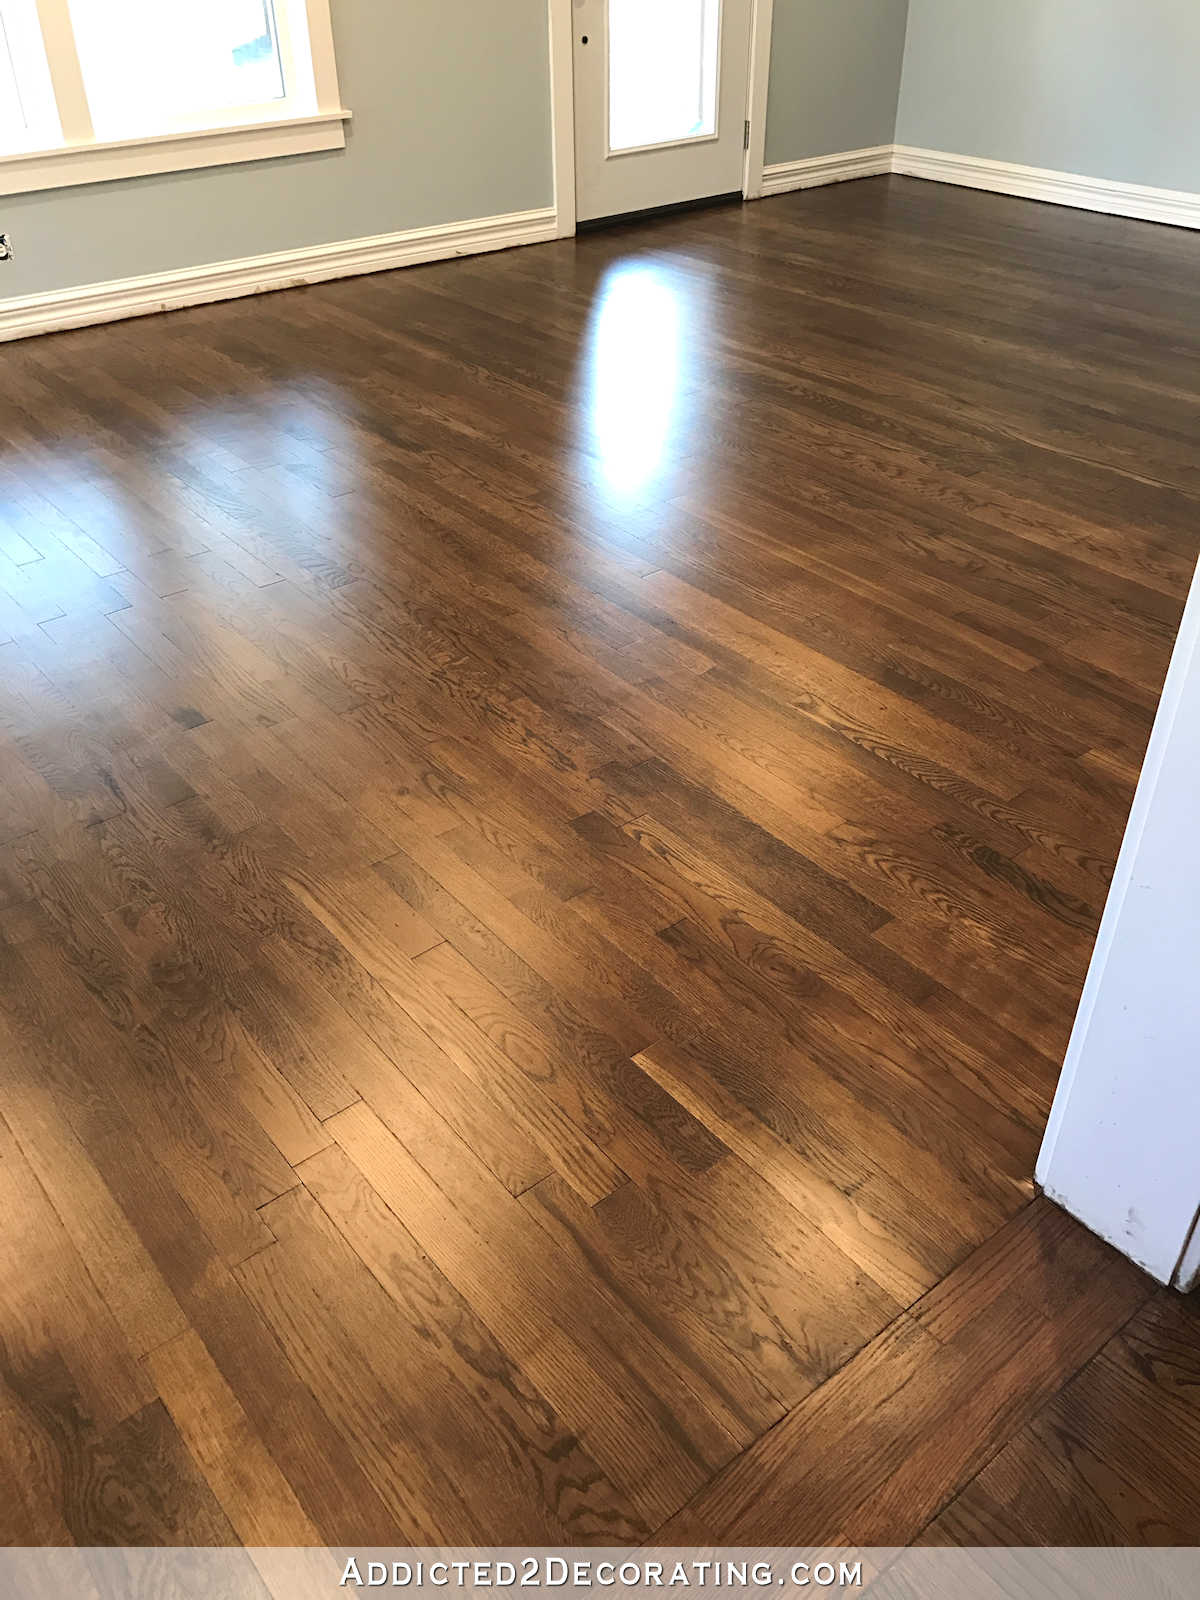 Refinished red oak hardwood floors living room and entryway